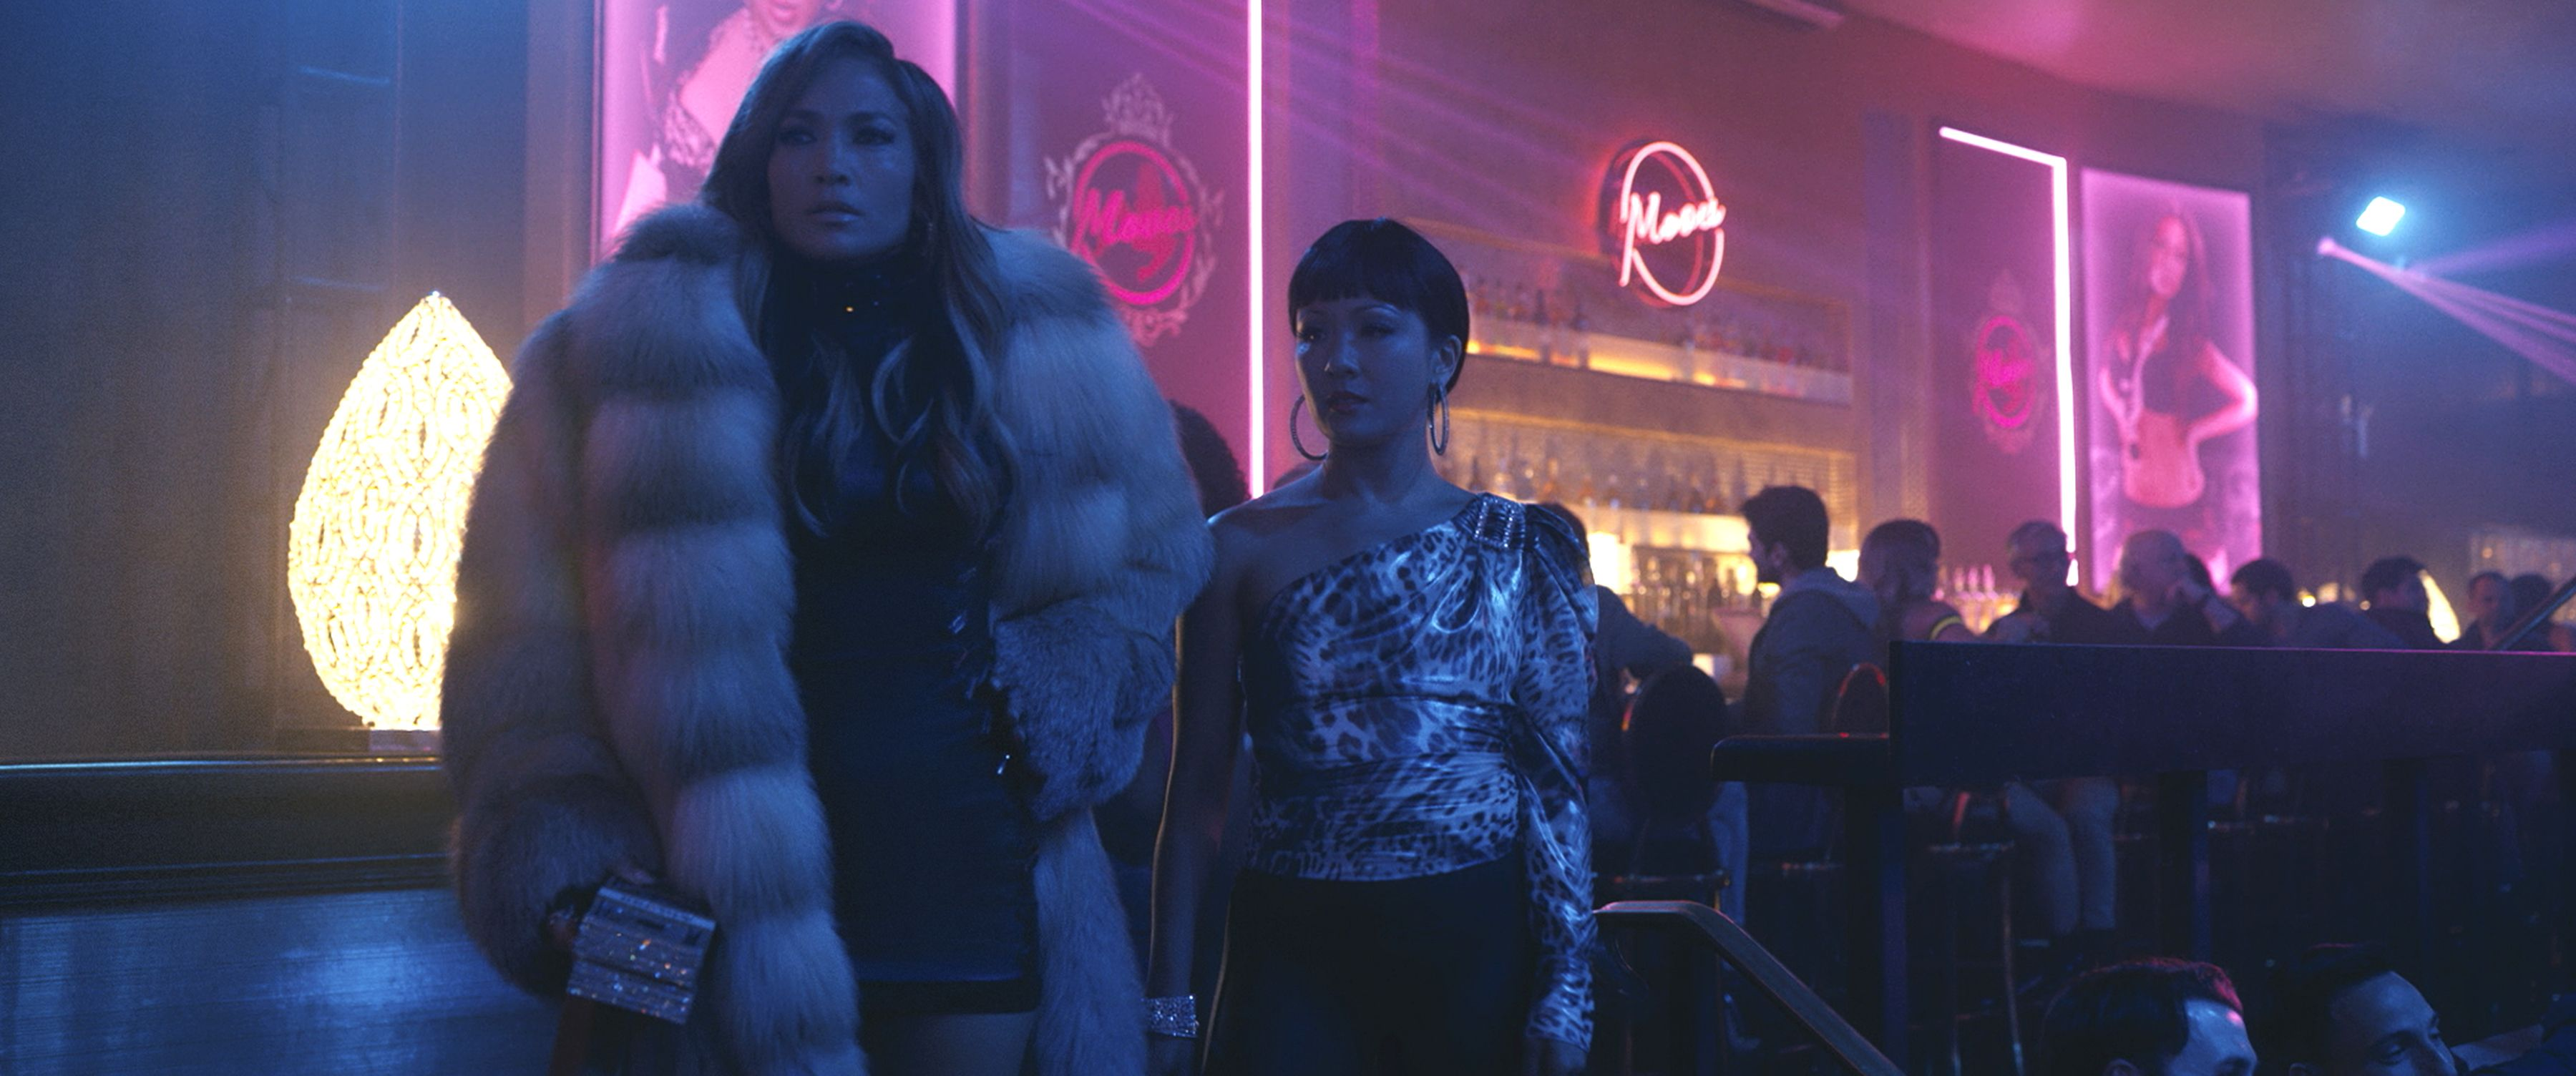 The 5 Best Things We Learned About the Costumes of 'Hustlers'